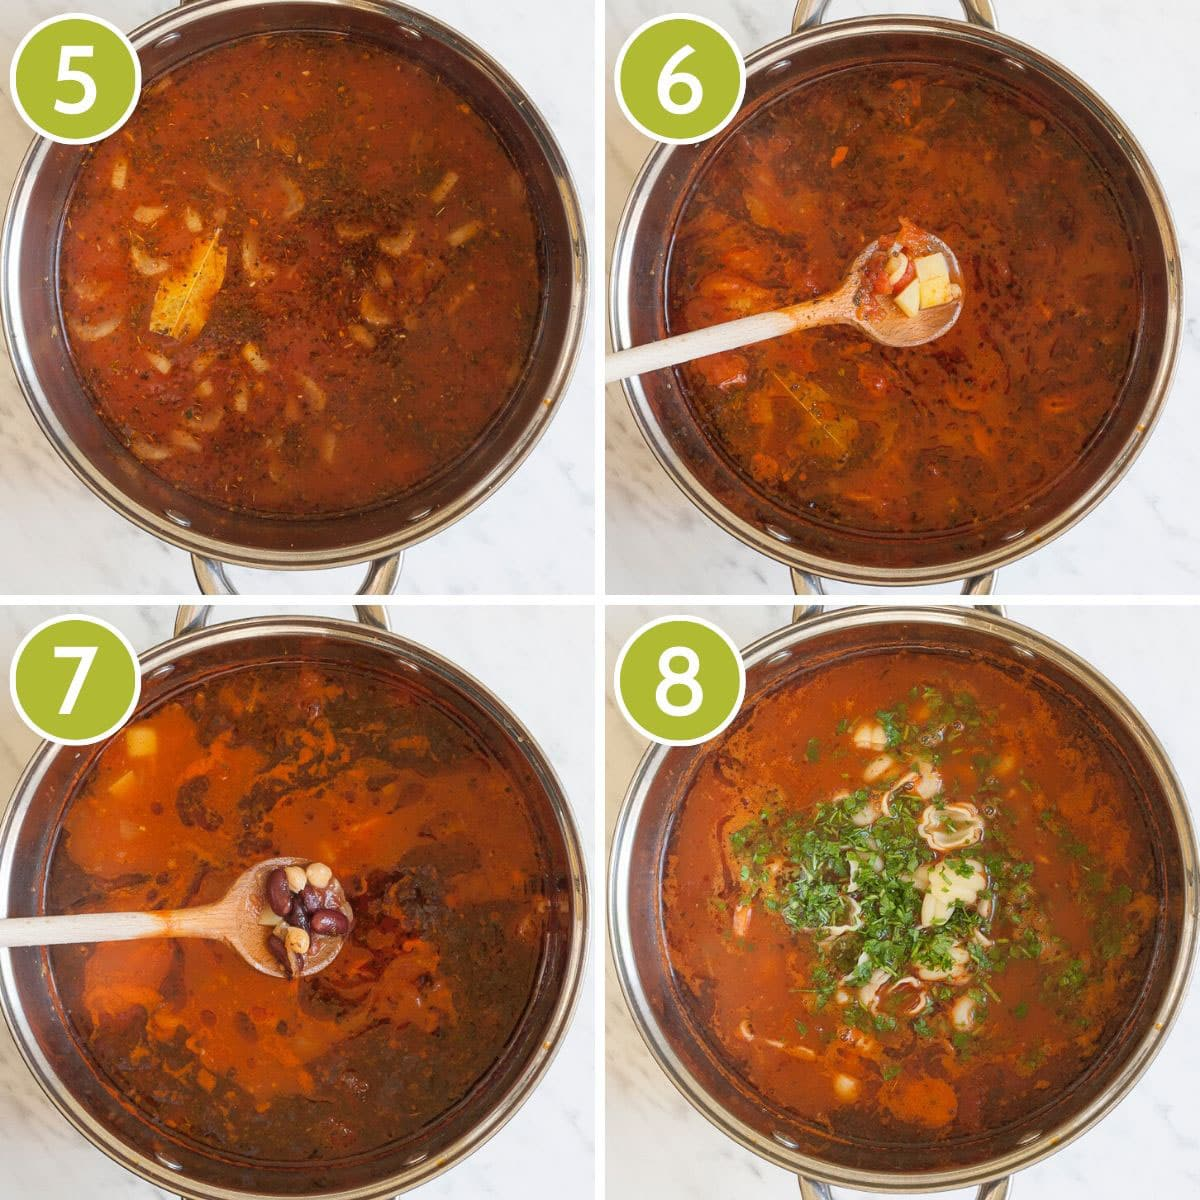 Last step photos to make easy vegan minestrone soup showing the stockpot from above